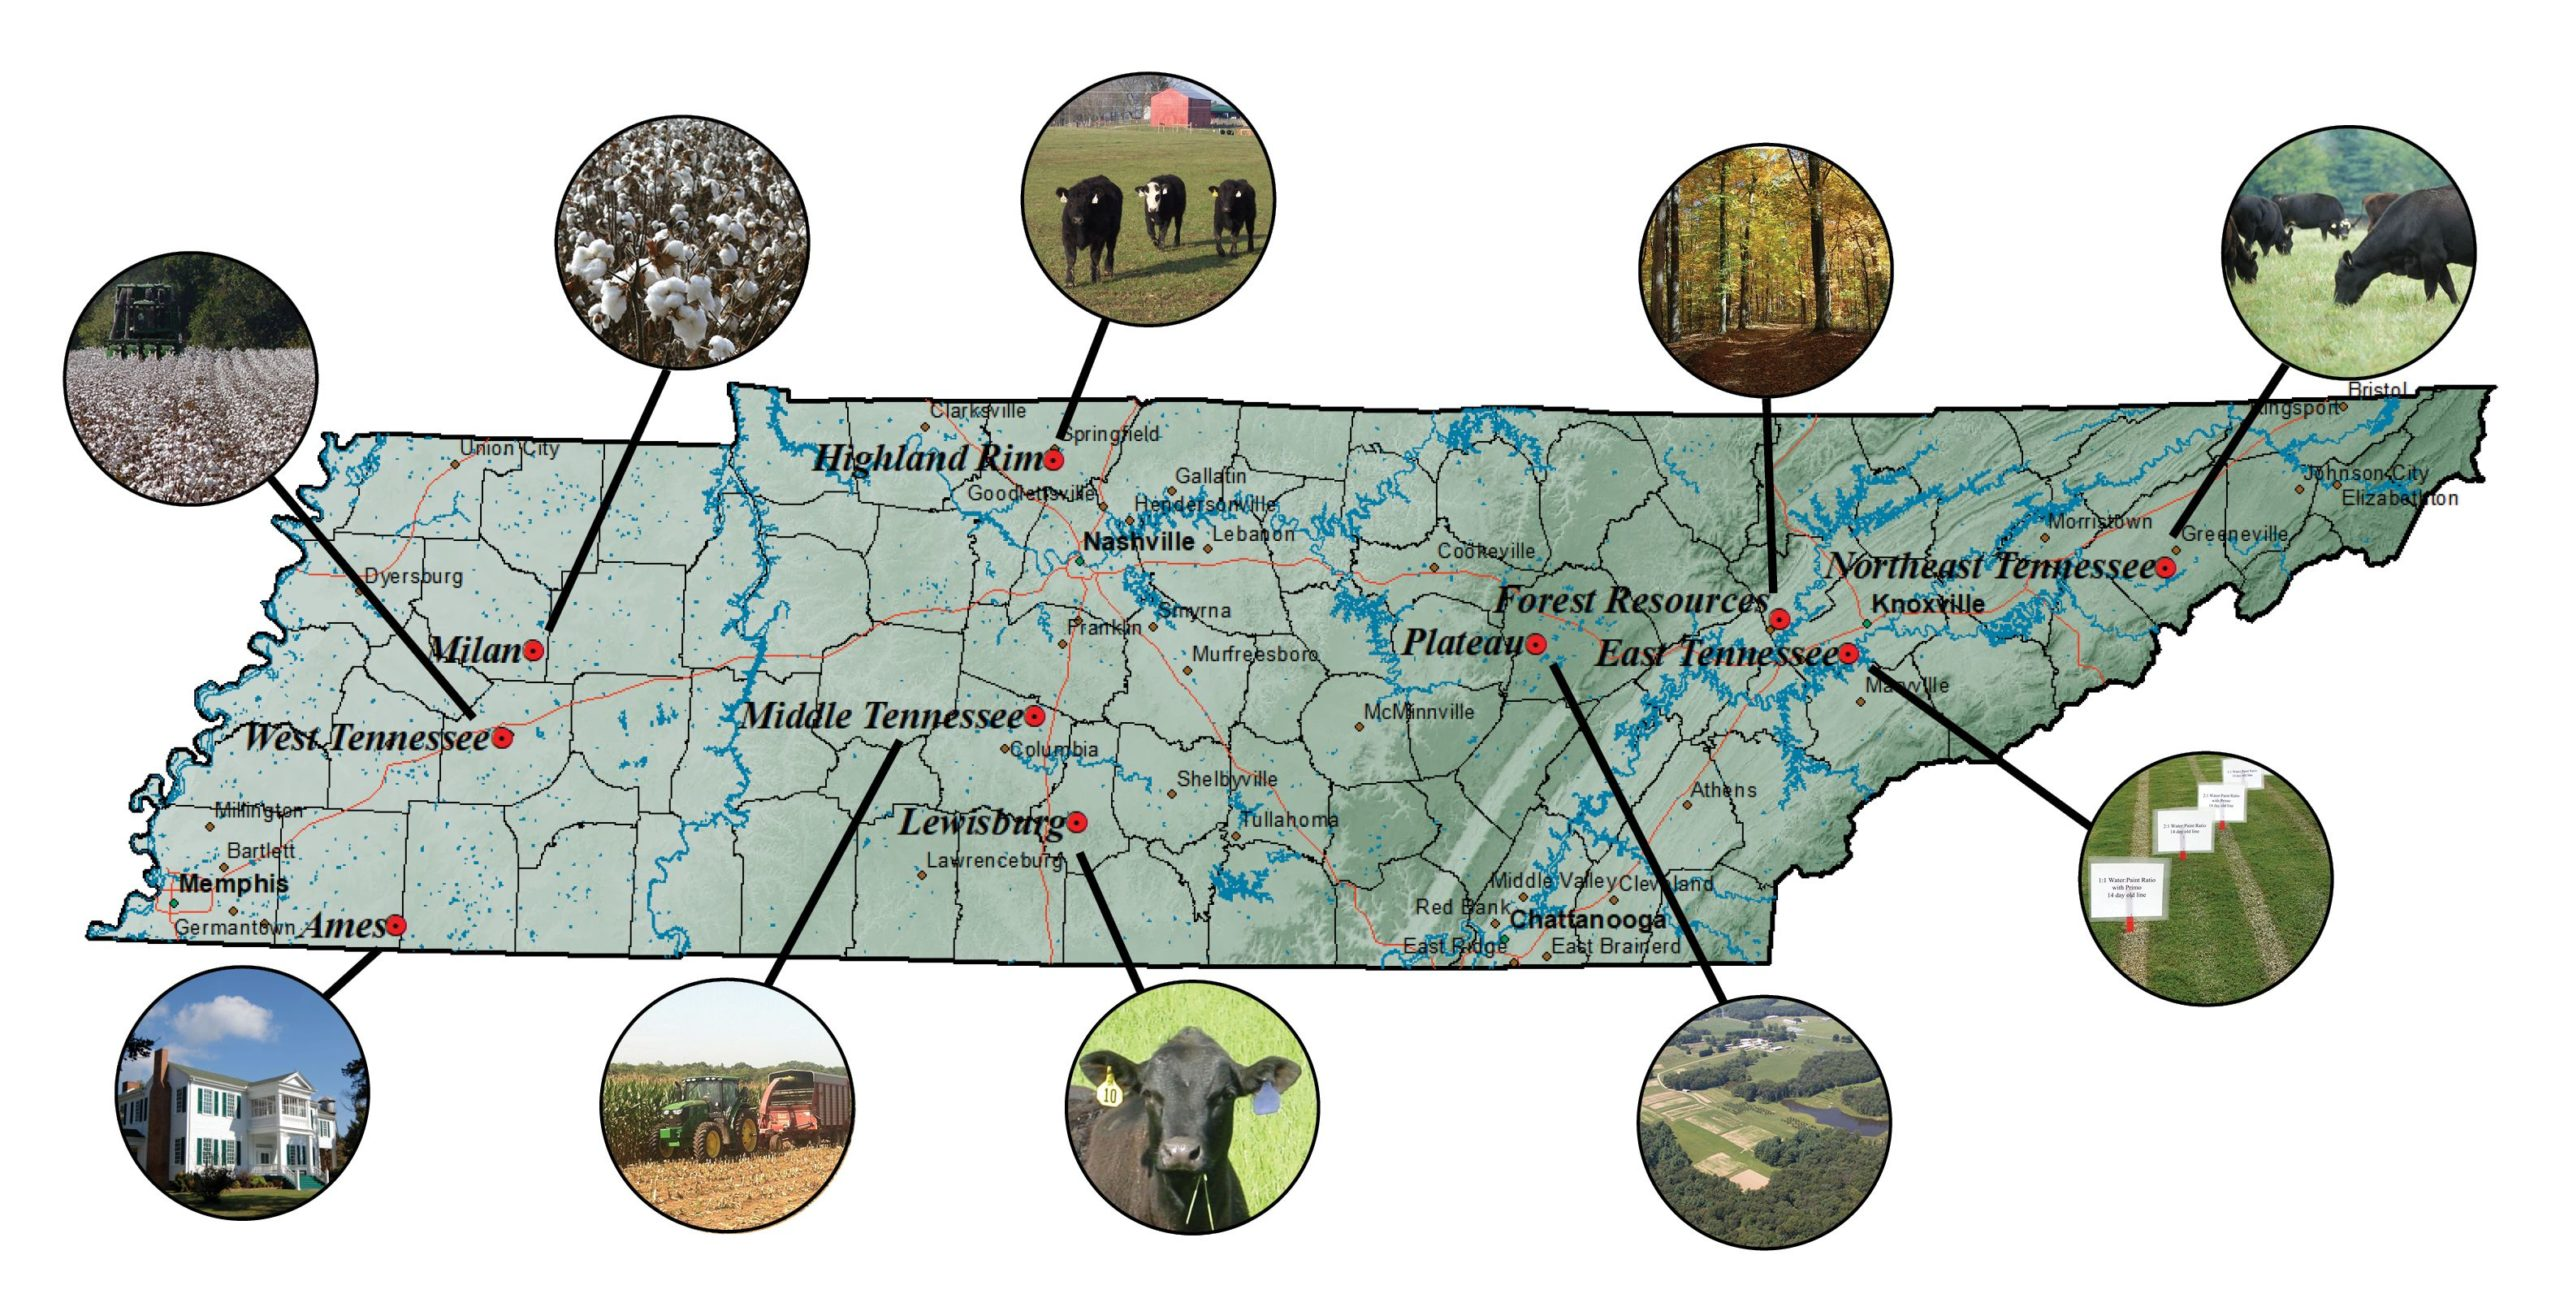 AgResearch and Education Center Location Map with Image Callouts